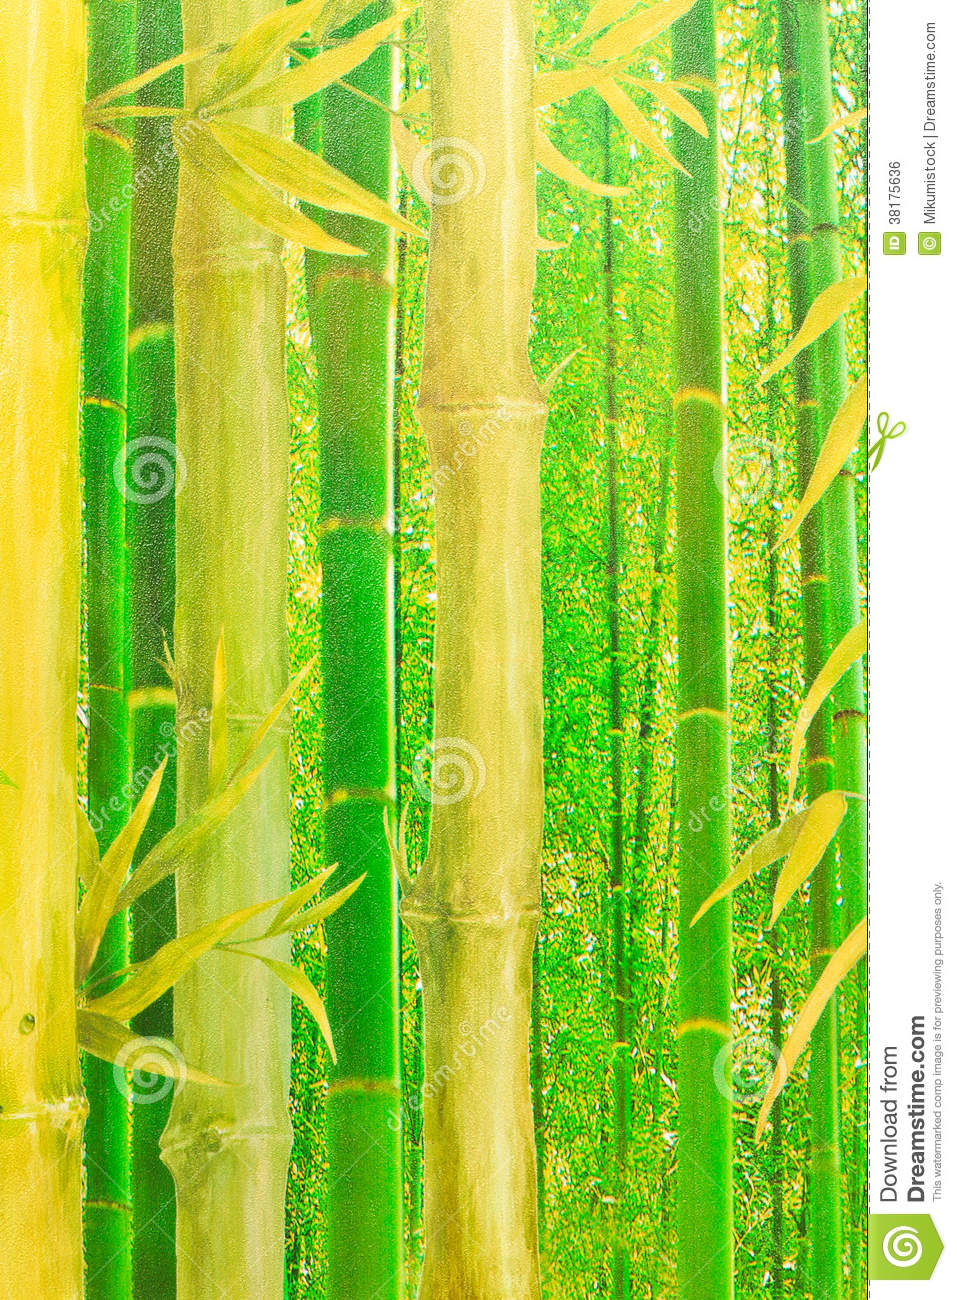 Abstract Green Bamboo Wallpaper Royalty Free Stock Image ...